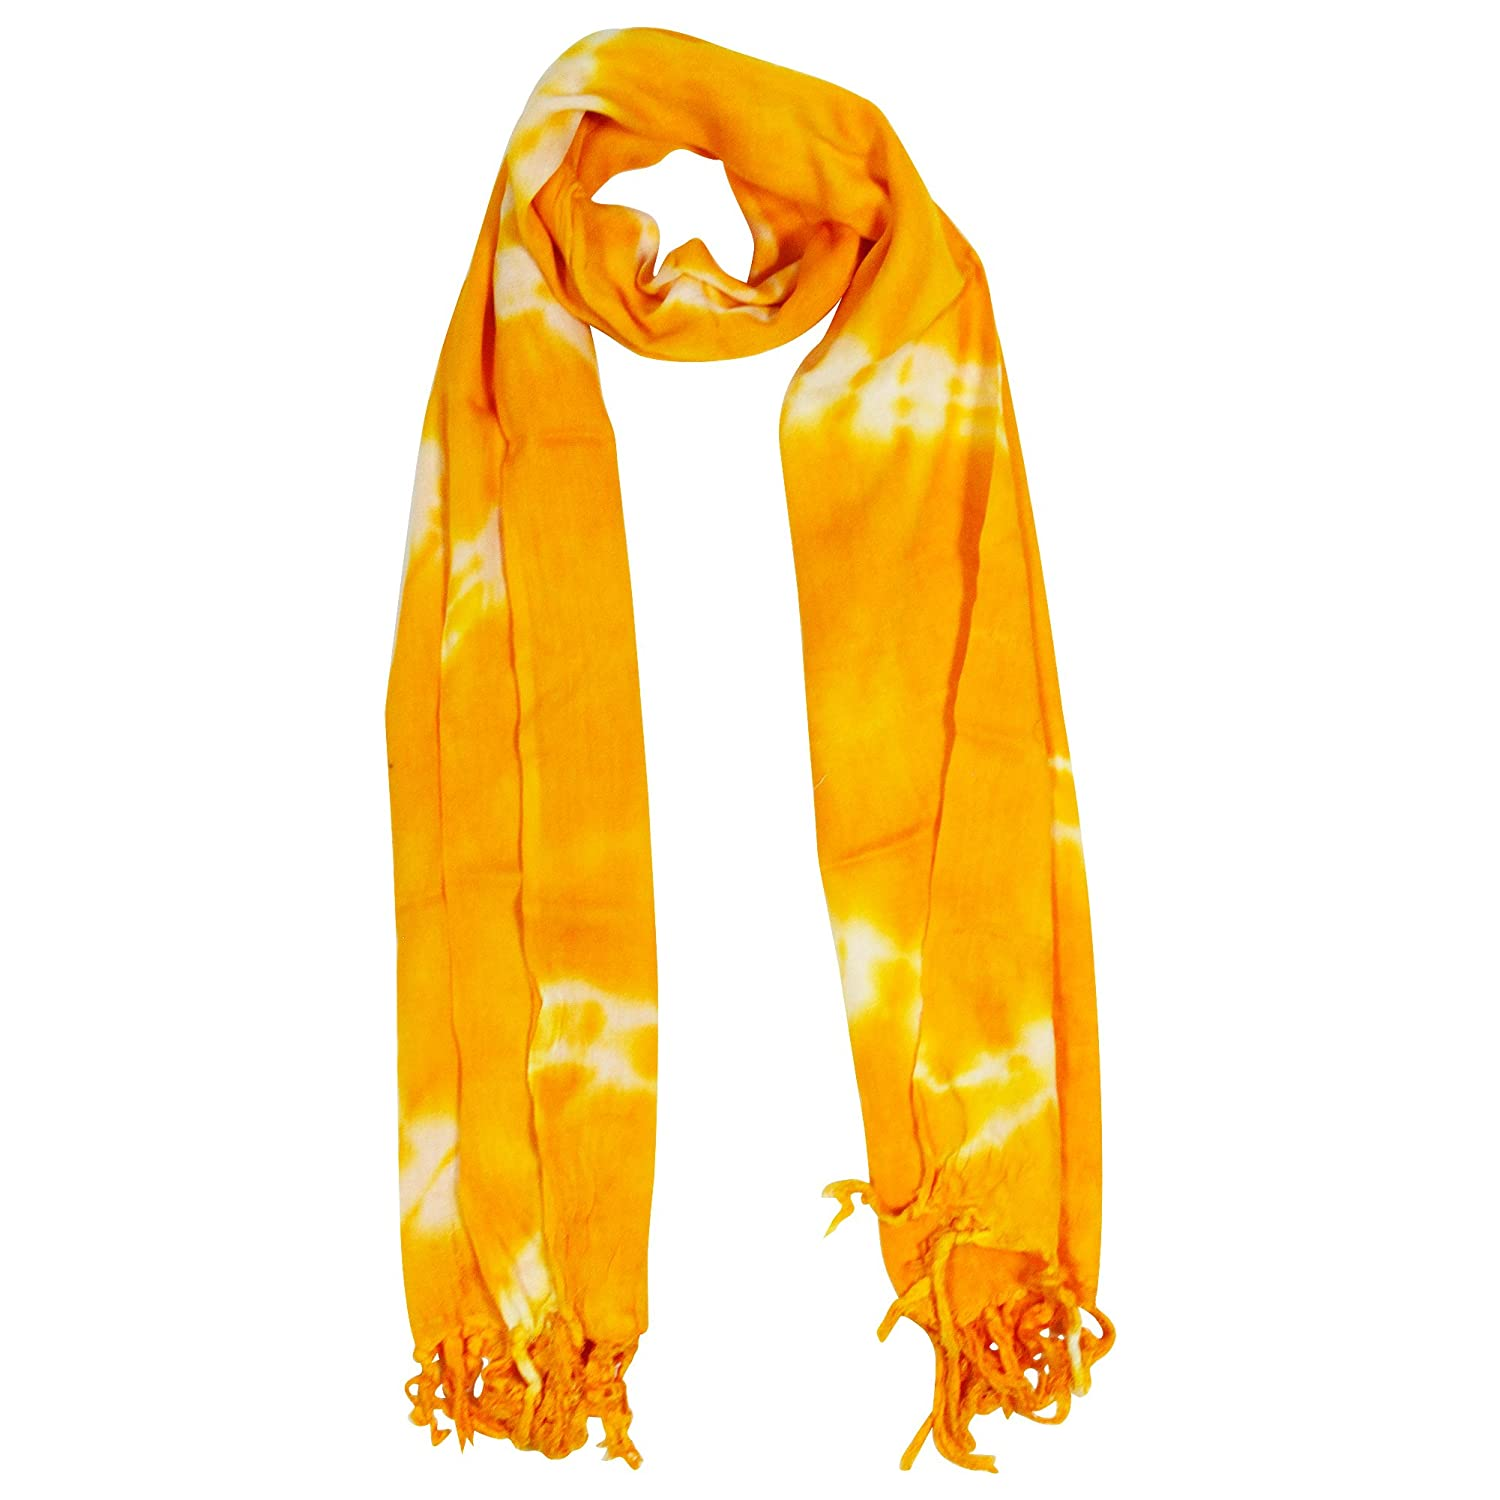 Yellow and White Tiedye Rectangle Women's Hijab Scarf with Tassles